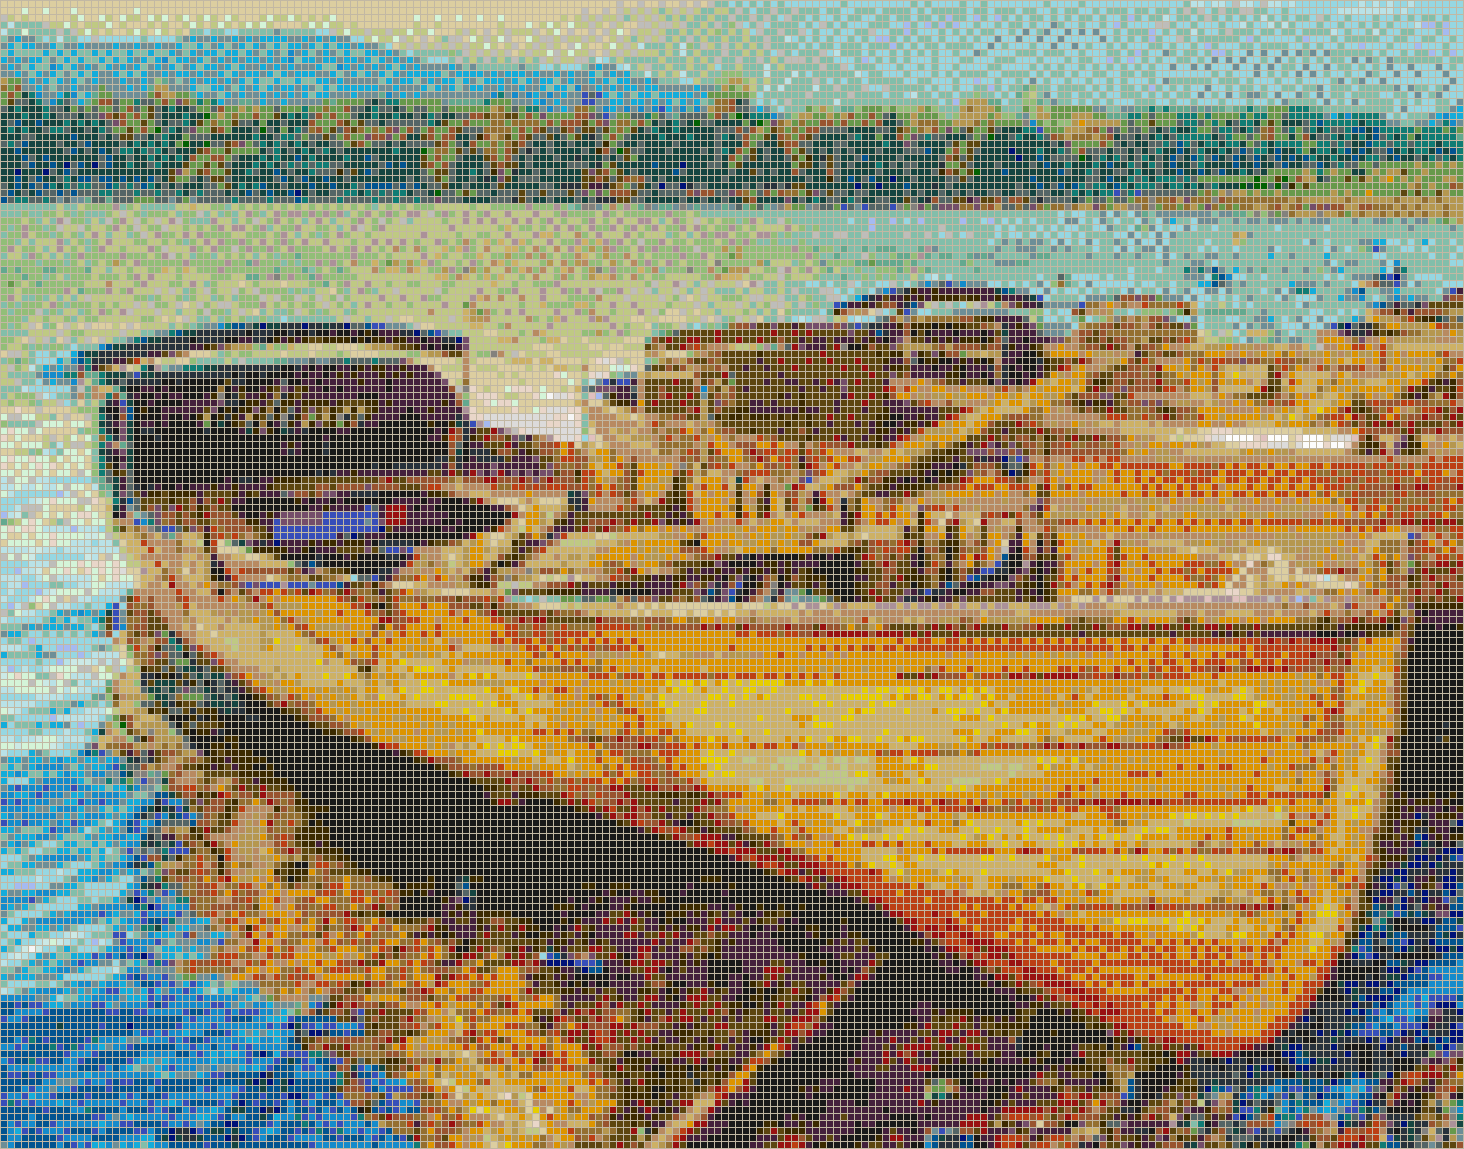 Derwentwater Boats (Lake District) - Mosaic Tile Picture Art